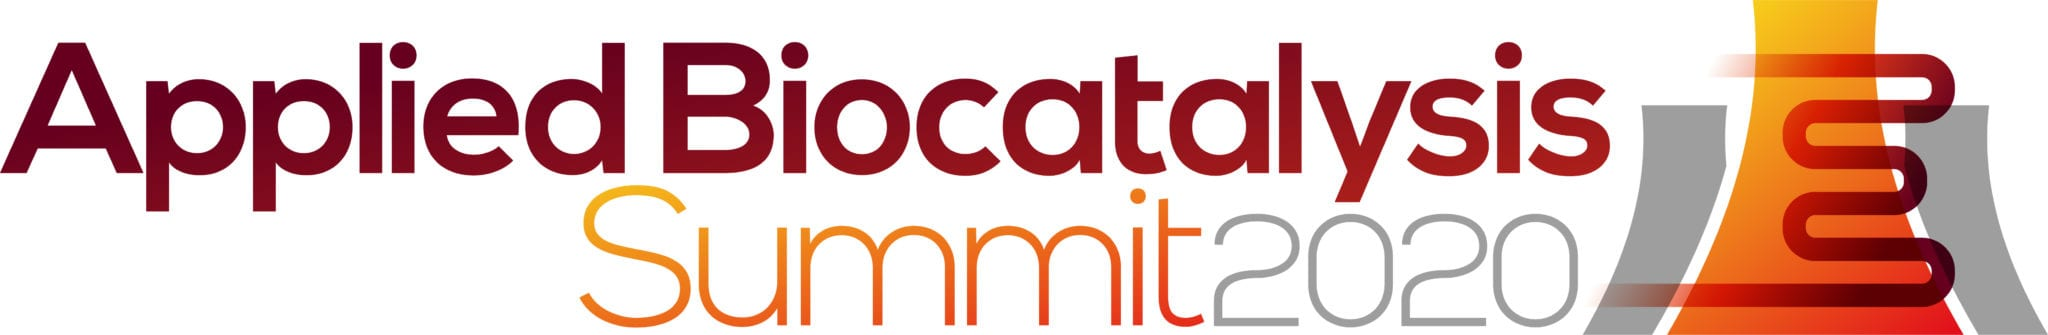 Applied Biocatalysis Summit 2020 logo